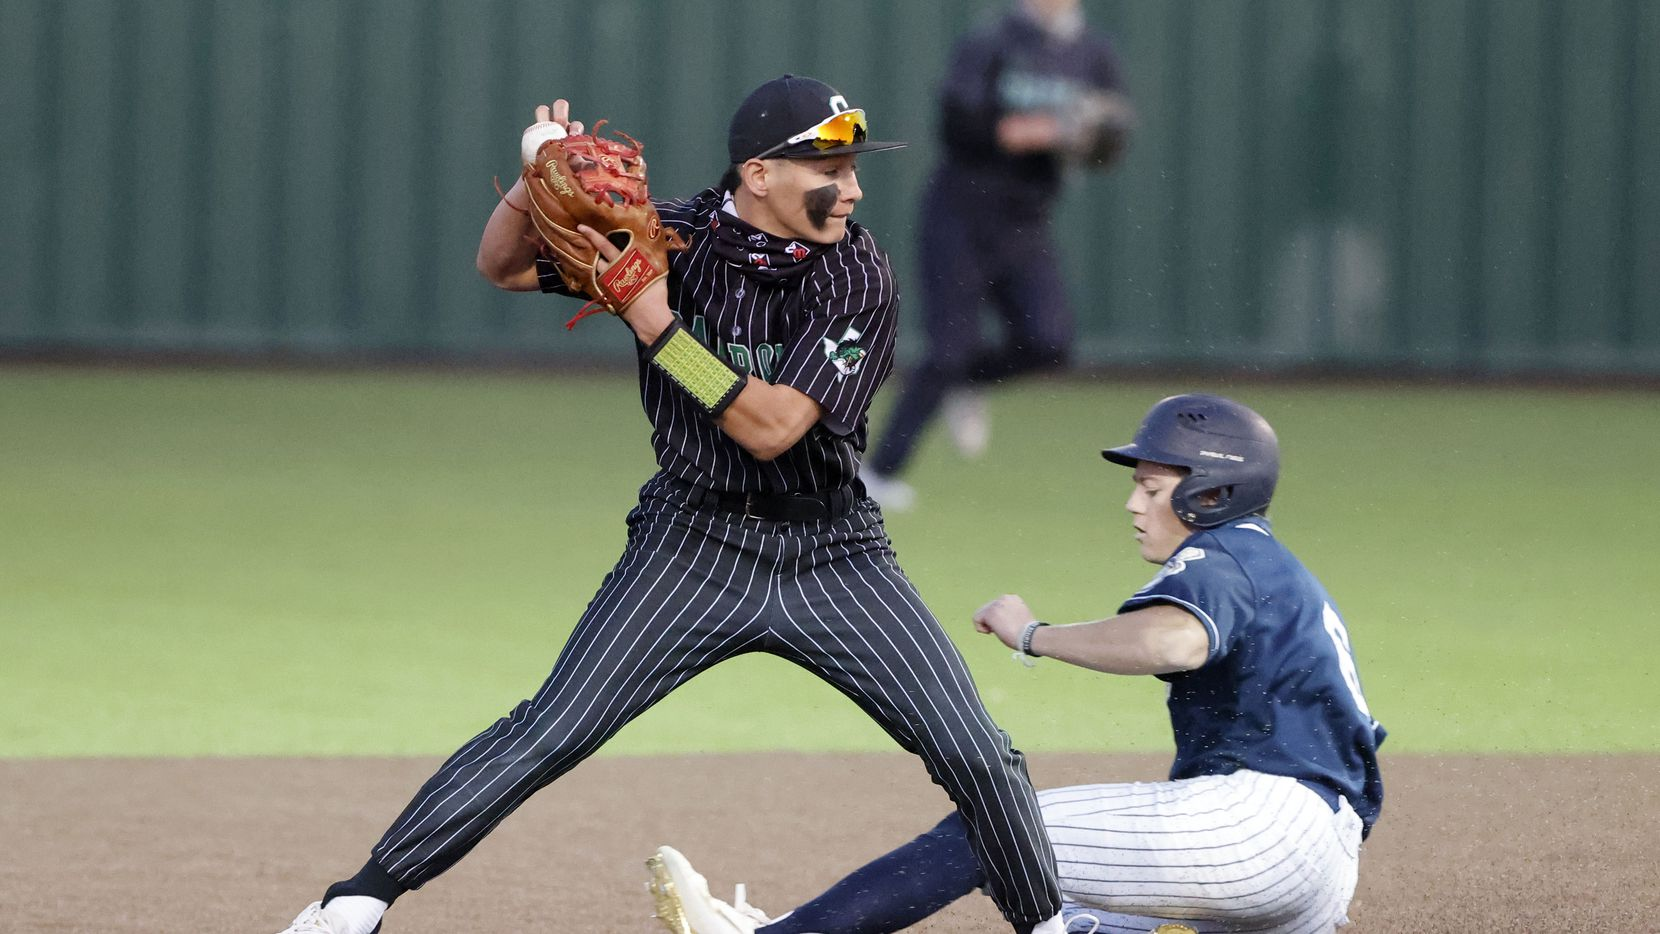 Southlake's Ethan Mendoza forces out Keller's Griffin Barton (6) during the fourth inning of their District 4-6A baseball game Friday. Southlake Carroll won 3-0. (Michael Ainsworth/Special Contributor)